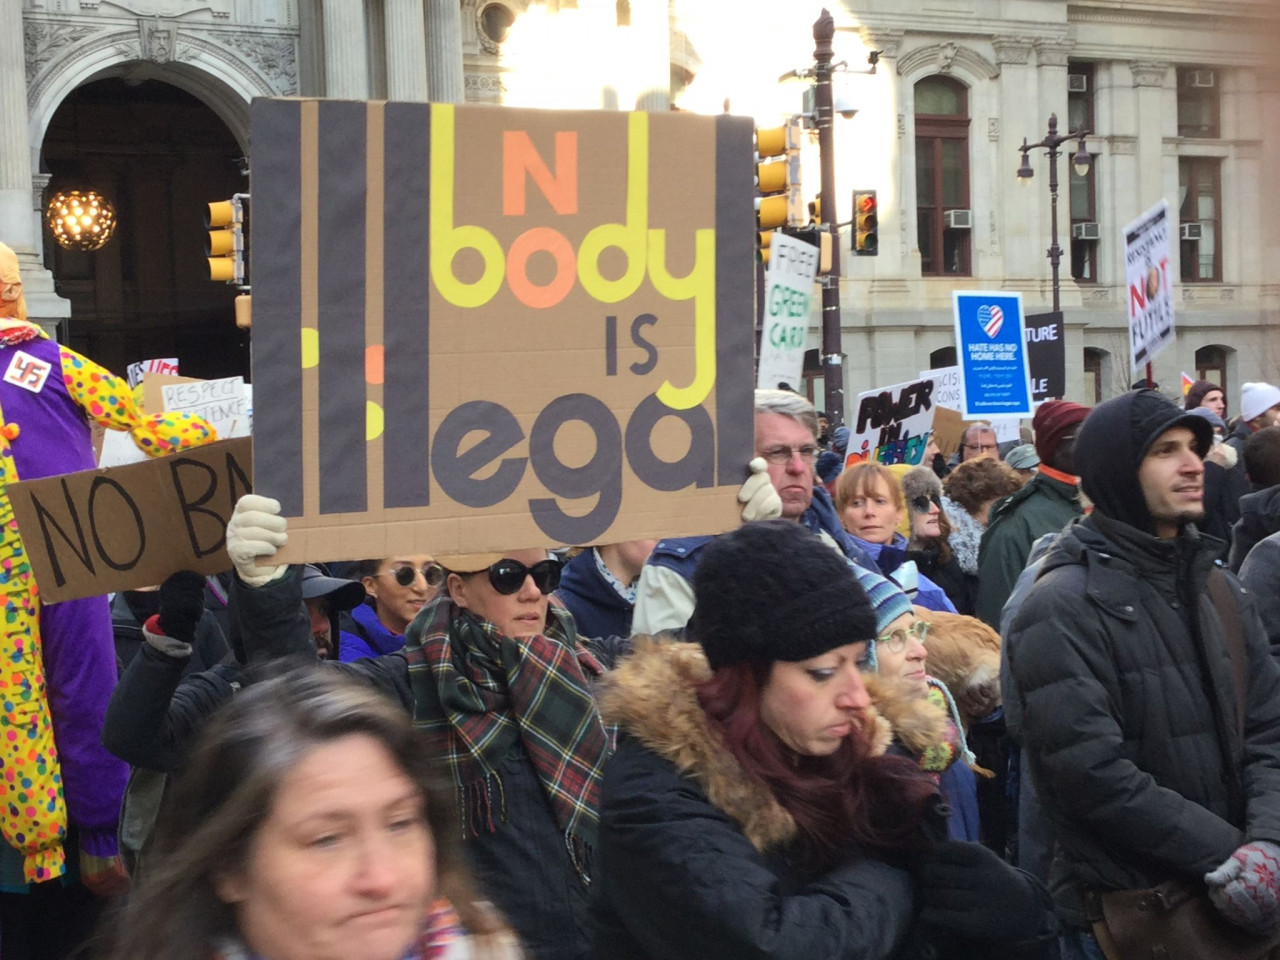 Immigrant Rights Protest - Philadelphia - February 4, 2017 - Nobody is Illegal